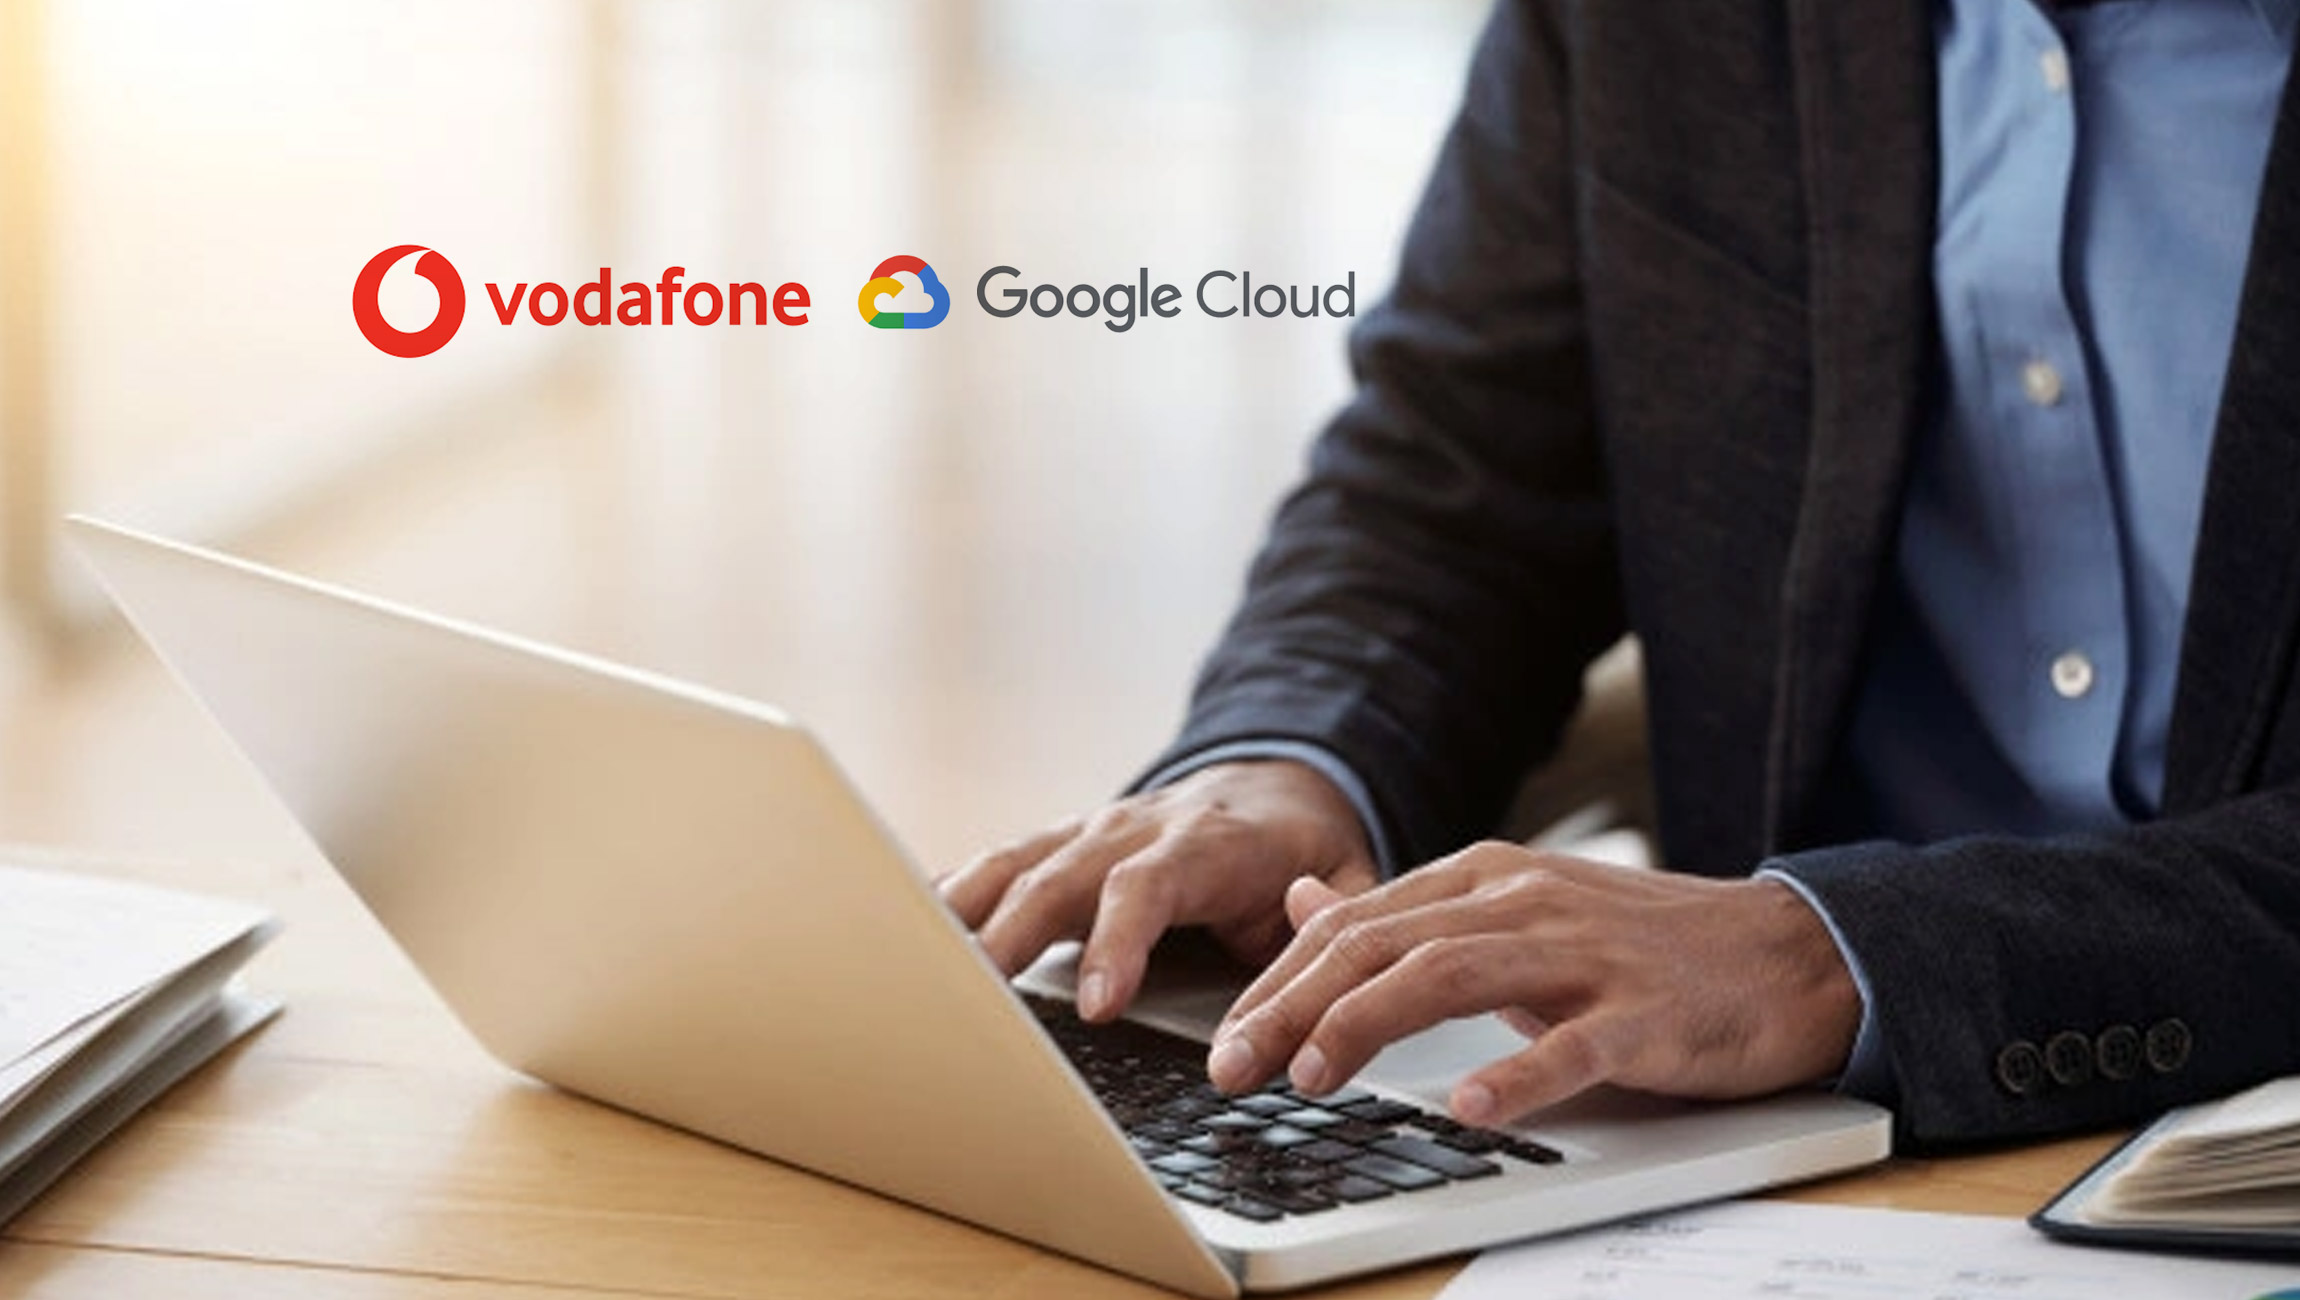 Vodafone and Google Cloud to Develop Industry-First Global Data Platform